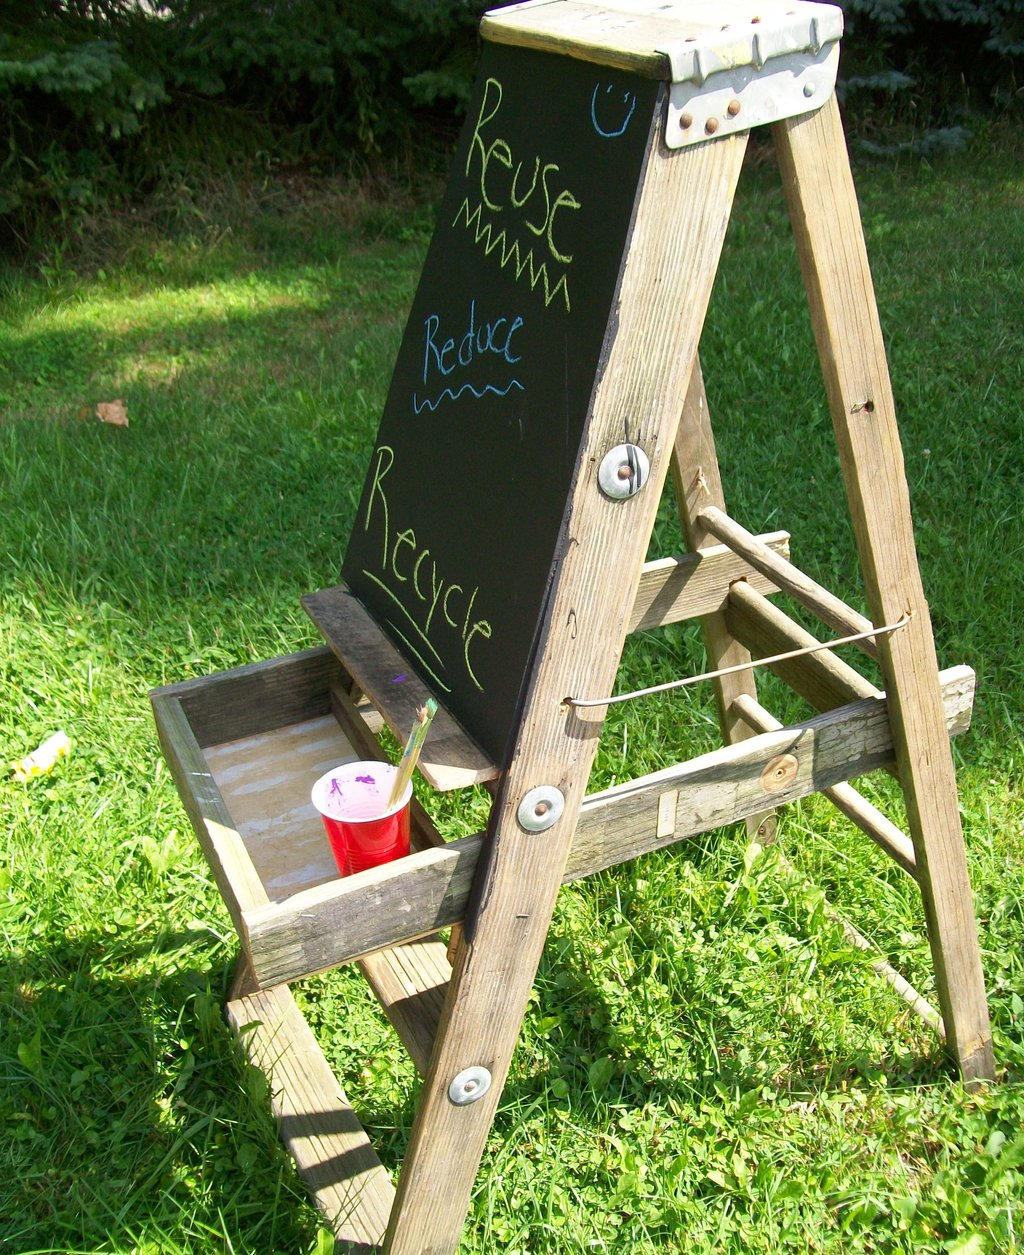 Step Ladder Painting Easel Kid Trash Treasure A Painter Table Top Easel